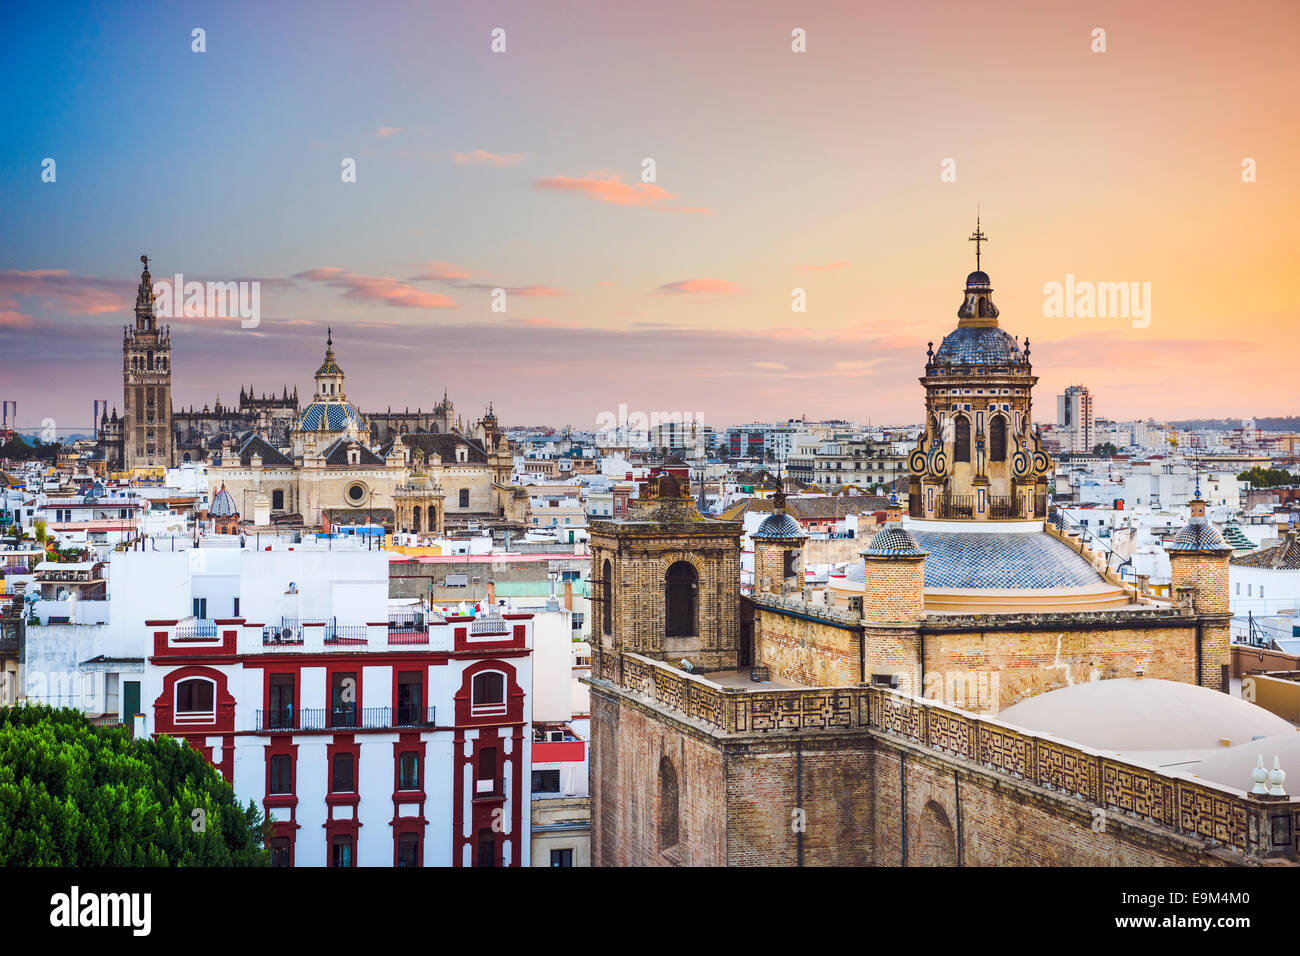 Séville, Espagne city skyline at Dusk. Photo Stock